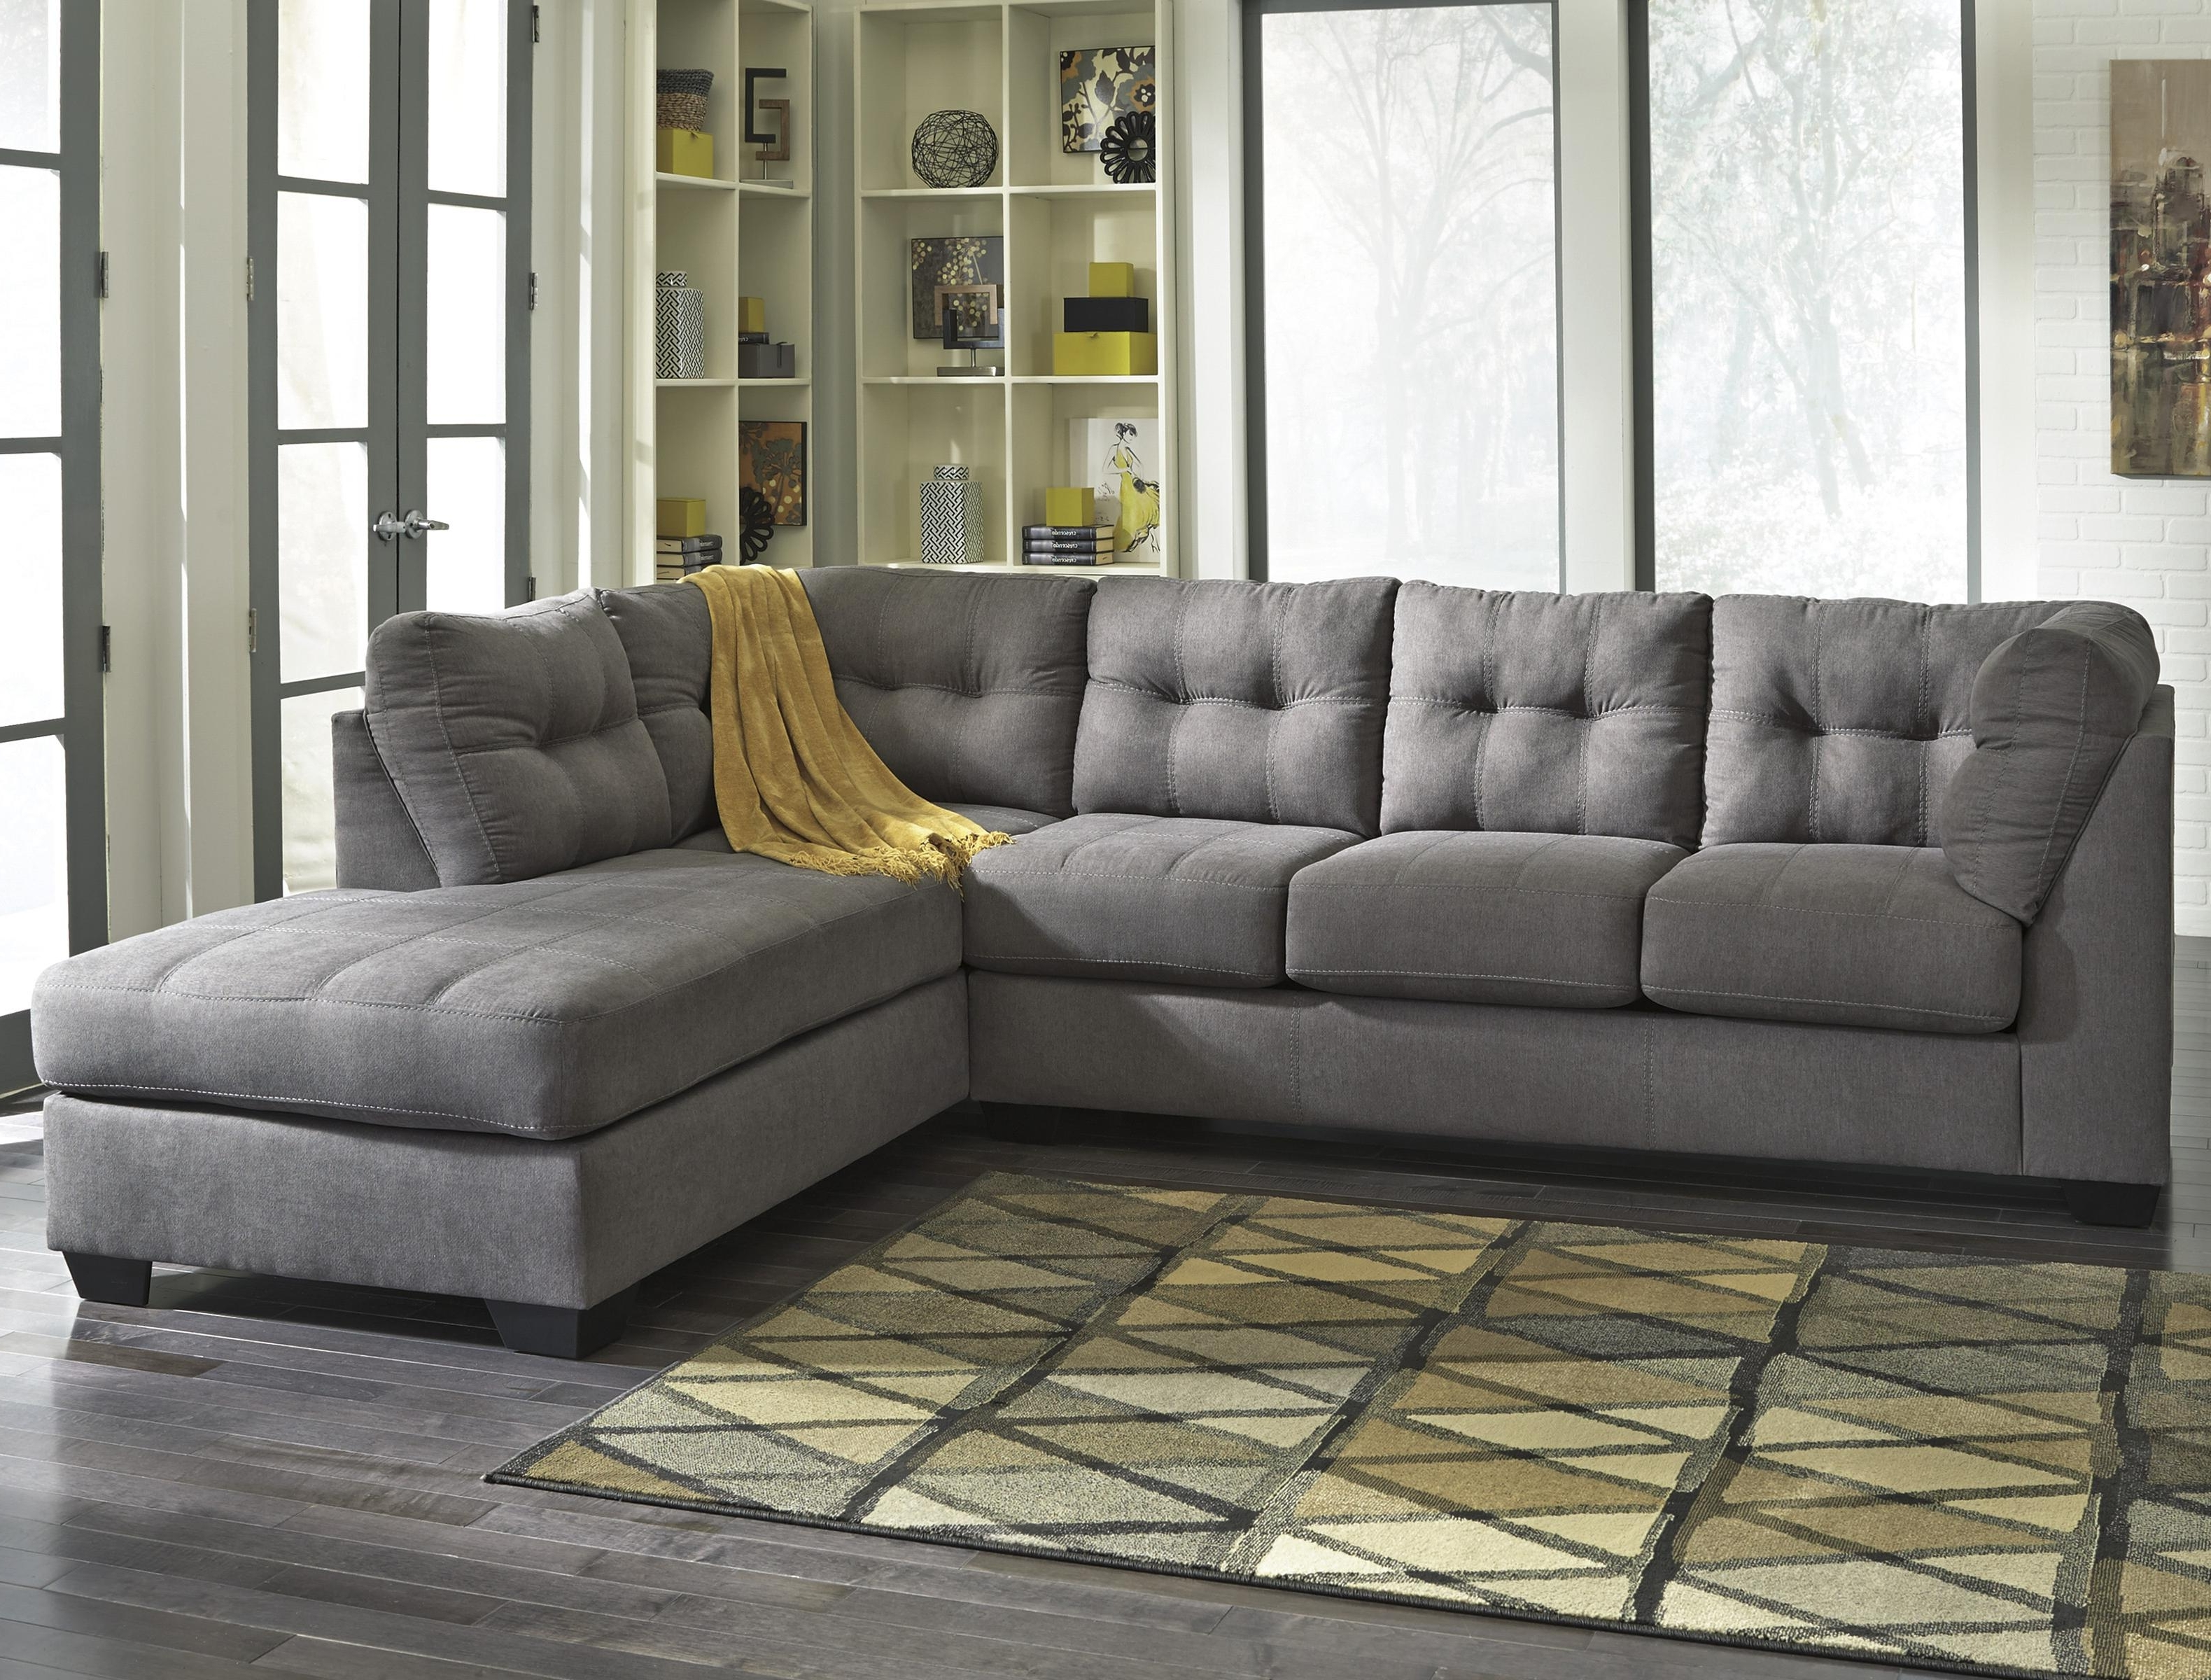 Sacramento Sectional Sofas Within Widely Used Sectional Sofas Sacramento – Hotelsbacau (View 14 of 15)